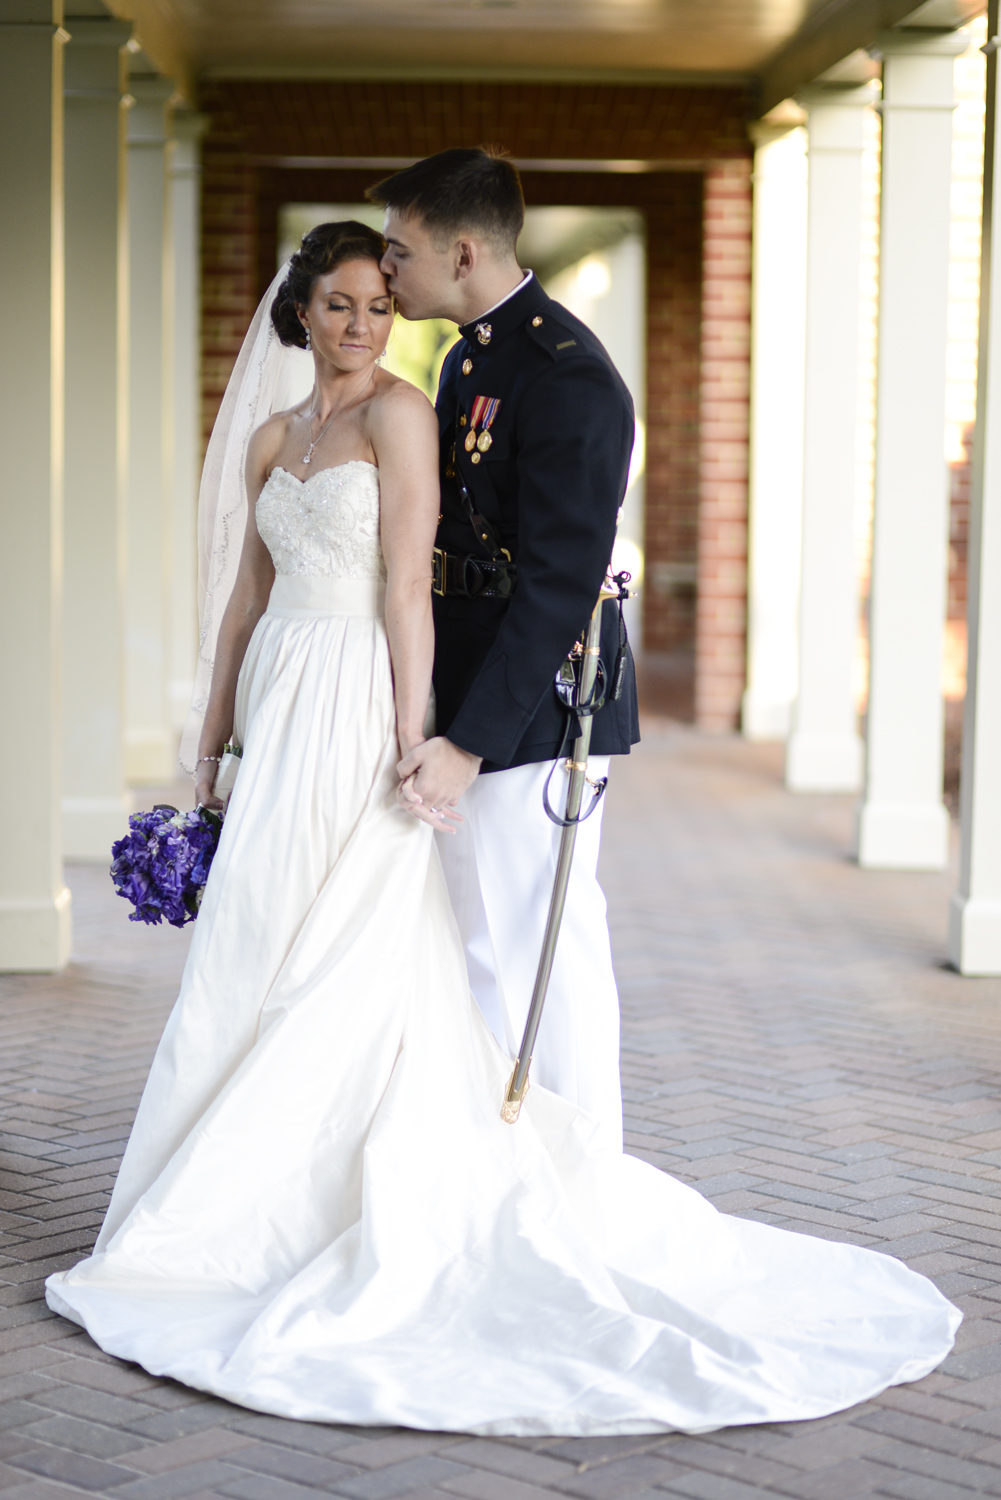 Bride and groom's wedding portraits | Maria Grace Photography